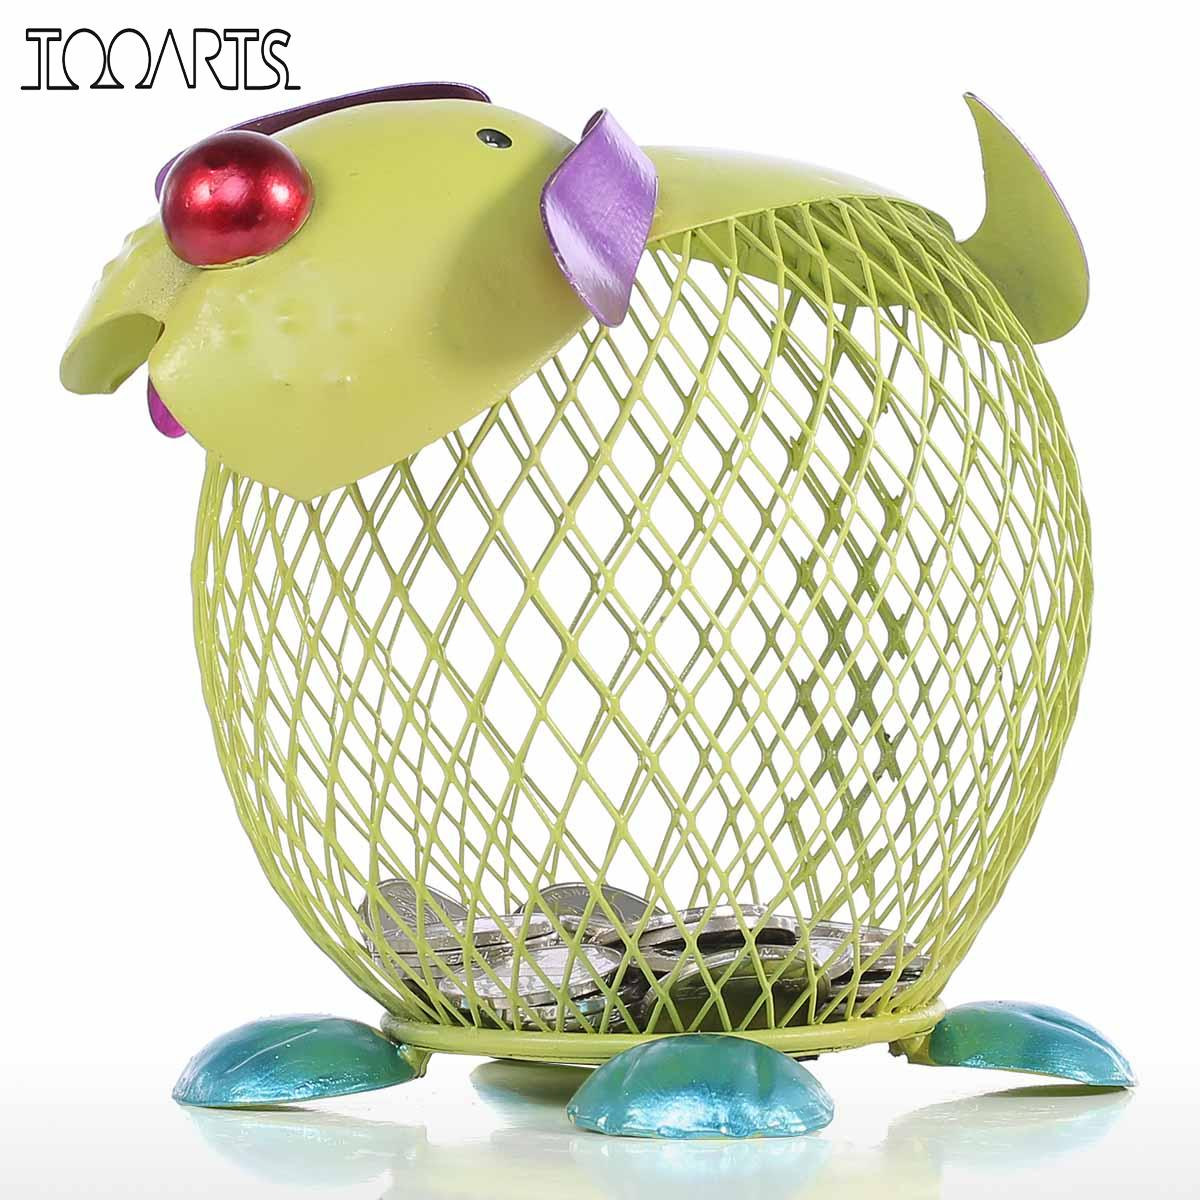 Tooarts Money Box Metal Green Puppy Money Bank Figurines Animal Piggy Bank Home Decor Craft Modern Home Decoration Accessories